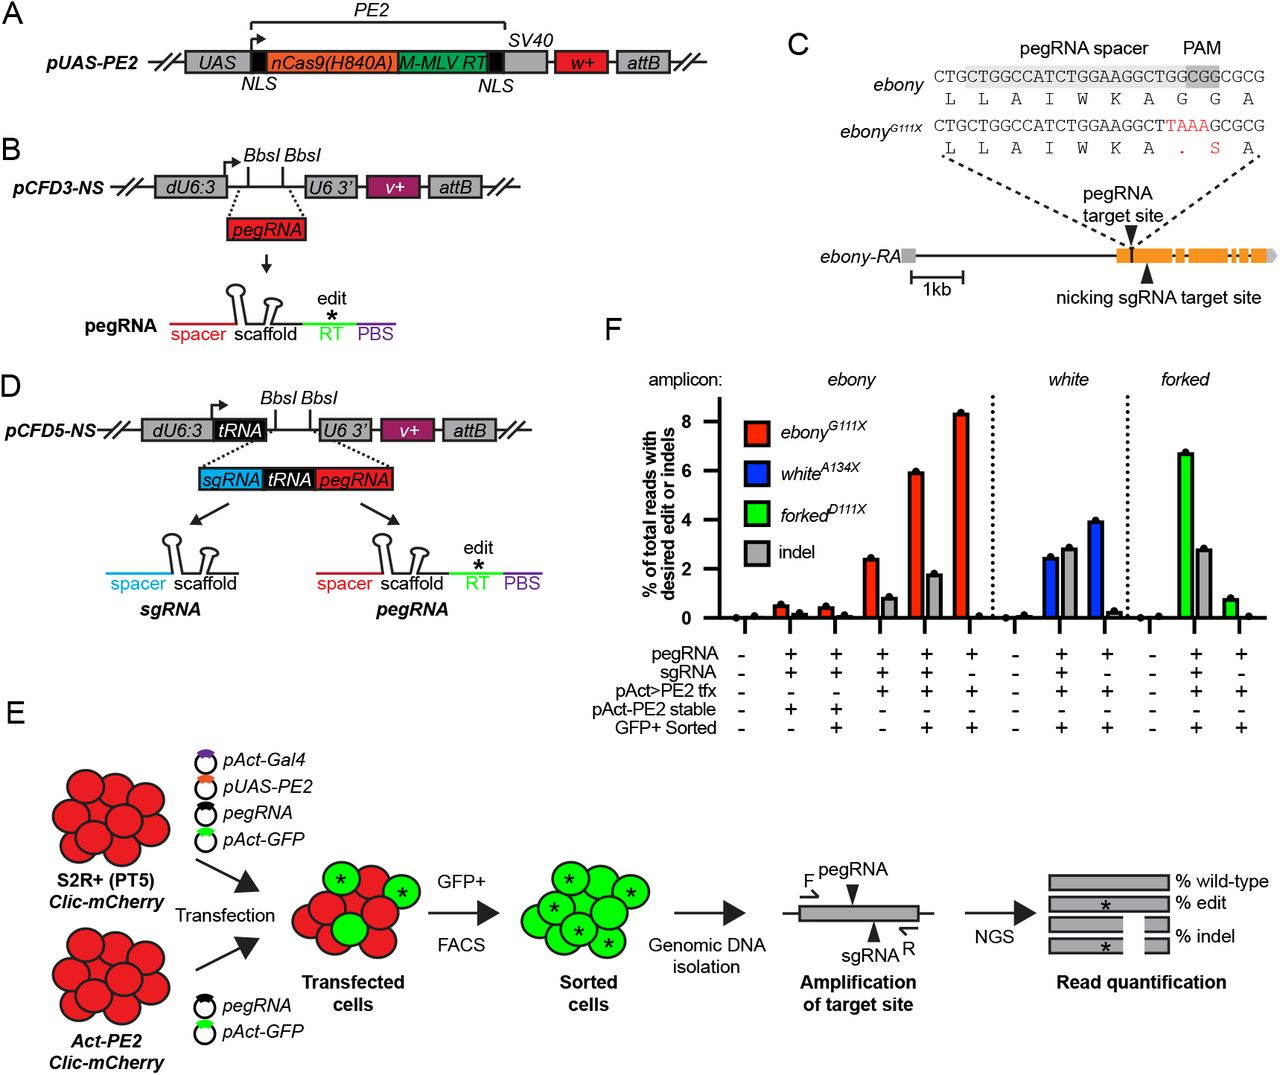 Prime editing in cultured S2R+ cells. A. Diagram of PE2 expression plasmid pUAS-PE2 . UAS , Upstream activating sequence ; NLS, Nuclear localization sequence; SV40, 3' UTR; w+ , white+ rescue transgene; attB , phiC31 recombination site. B. Diagram of <t>pCFD3-NS</t> pegRNA expression plasmid. <t>BbsI</t> sites indicate cloning site for pegRNA encoding sequence. dU6:3 , U6 promoter; U6 3', U6 downstream region; v+ , vermillion+ rescue transgene. C. ebony genomic region showing target site and installed edit ( ebony G111X ). D. Dual sgRNA and pegRNA expression plasmid pCFD5-NS . tRNA, D.m. and O.s. Gly tRNA sequence. E. Schematic of S2R+ prime editing experiment. F. Quantification of precise editing and indels from S2R+ transfection experiments by amplicon sequencing. tfx, transfection.